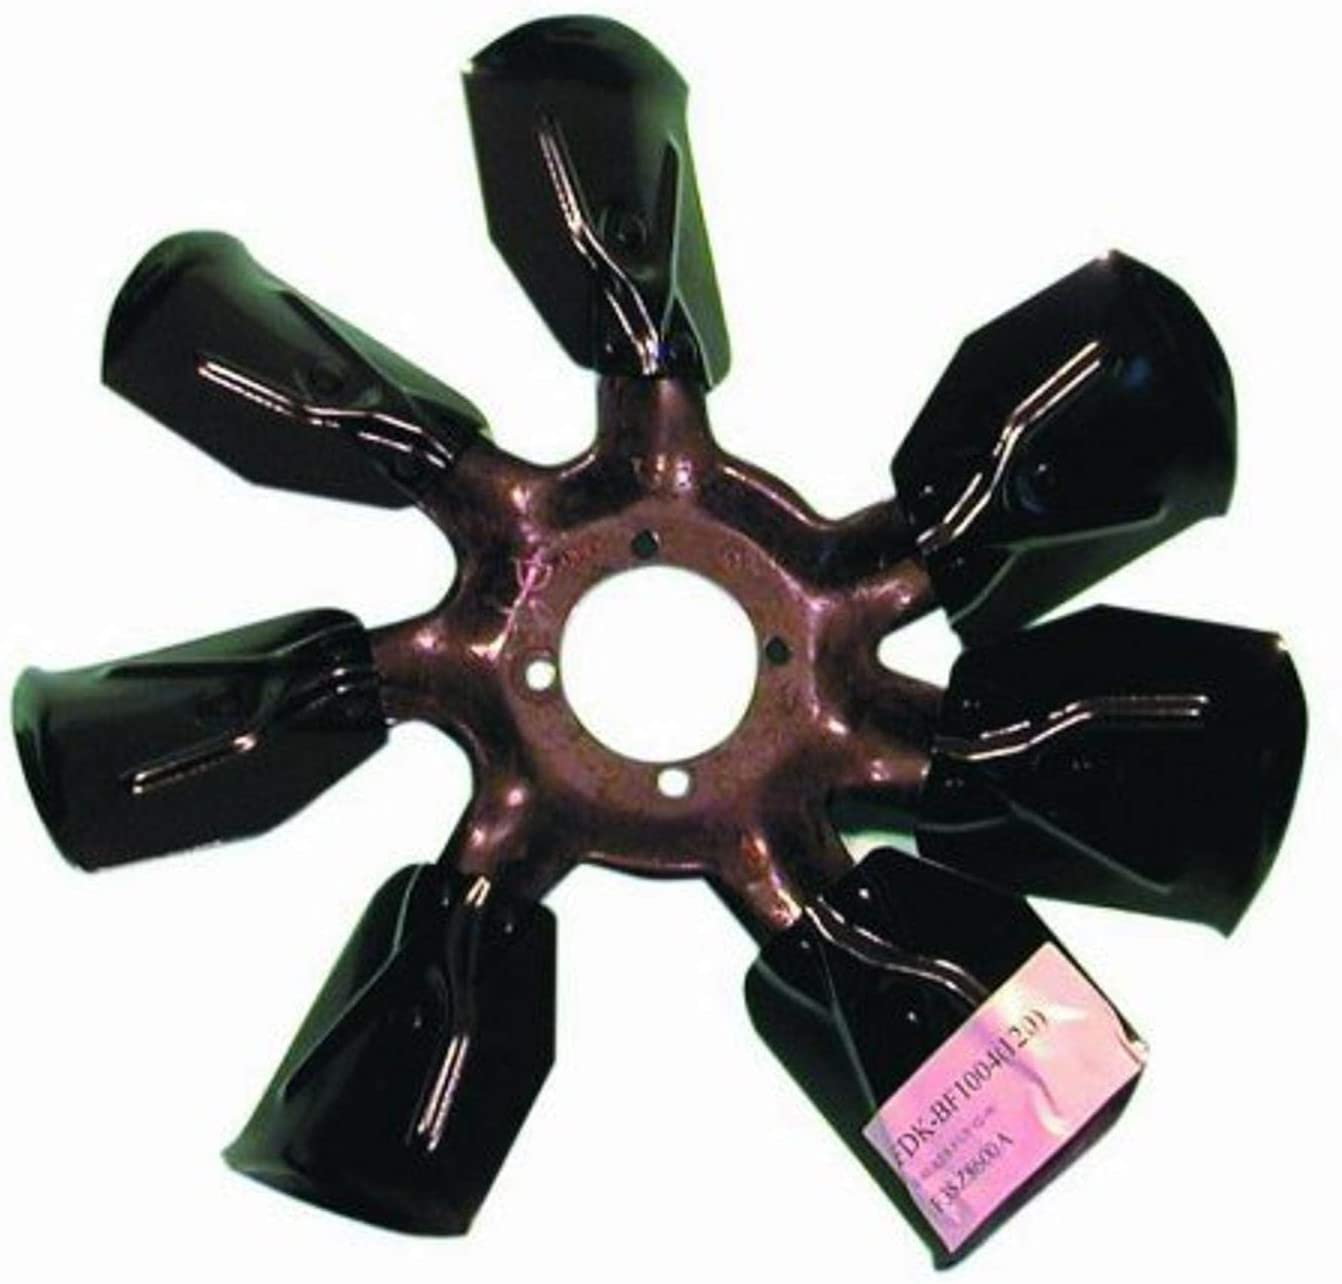 DEPO 330-55041-400 Replacement Engine Cooling Fan Blade (This product is an aftermarket product. It is not created or sold by the OE car company)